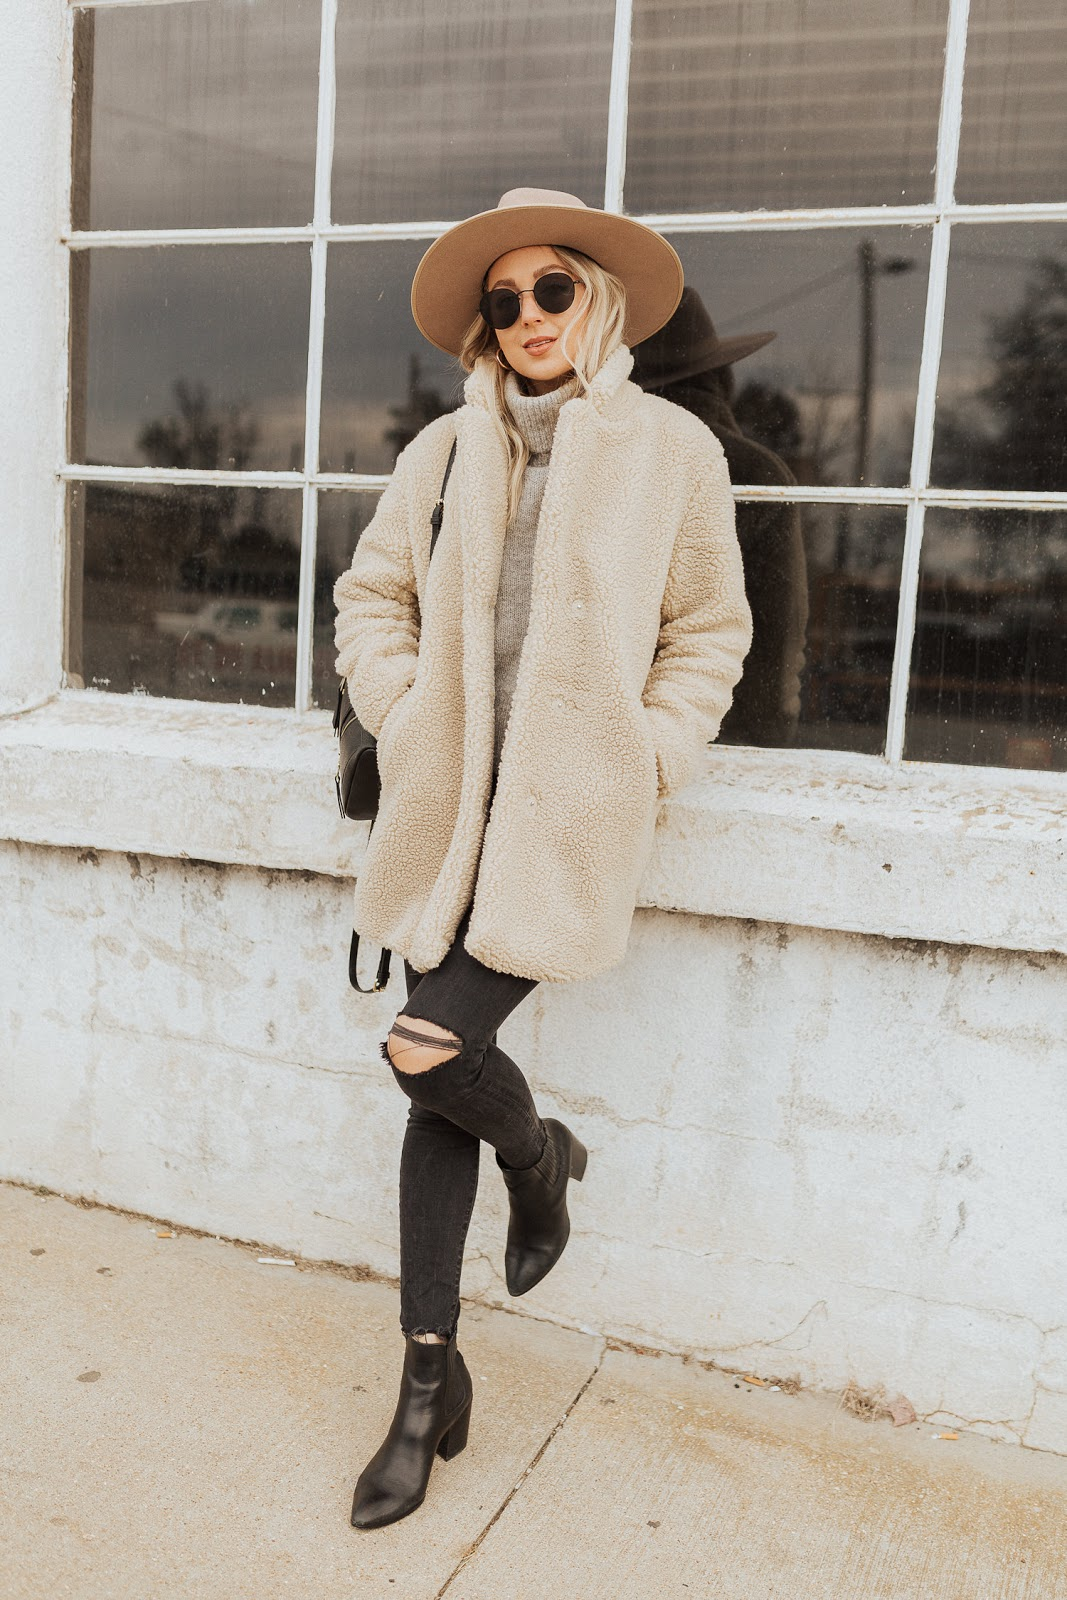 How to style a teddy coat or teddy jacket